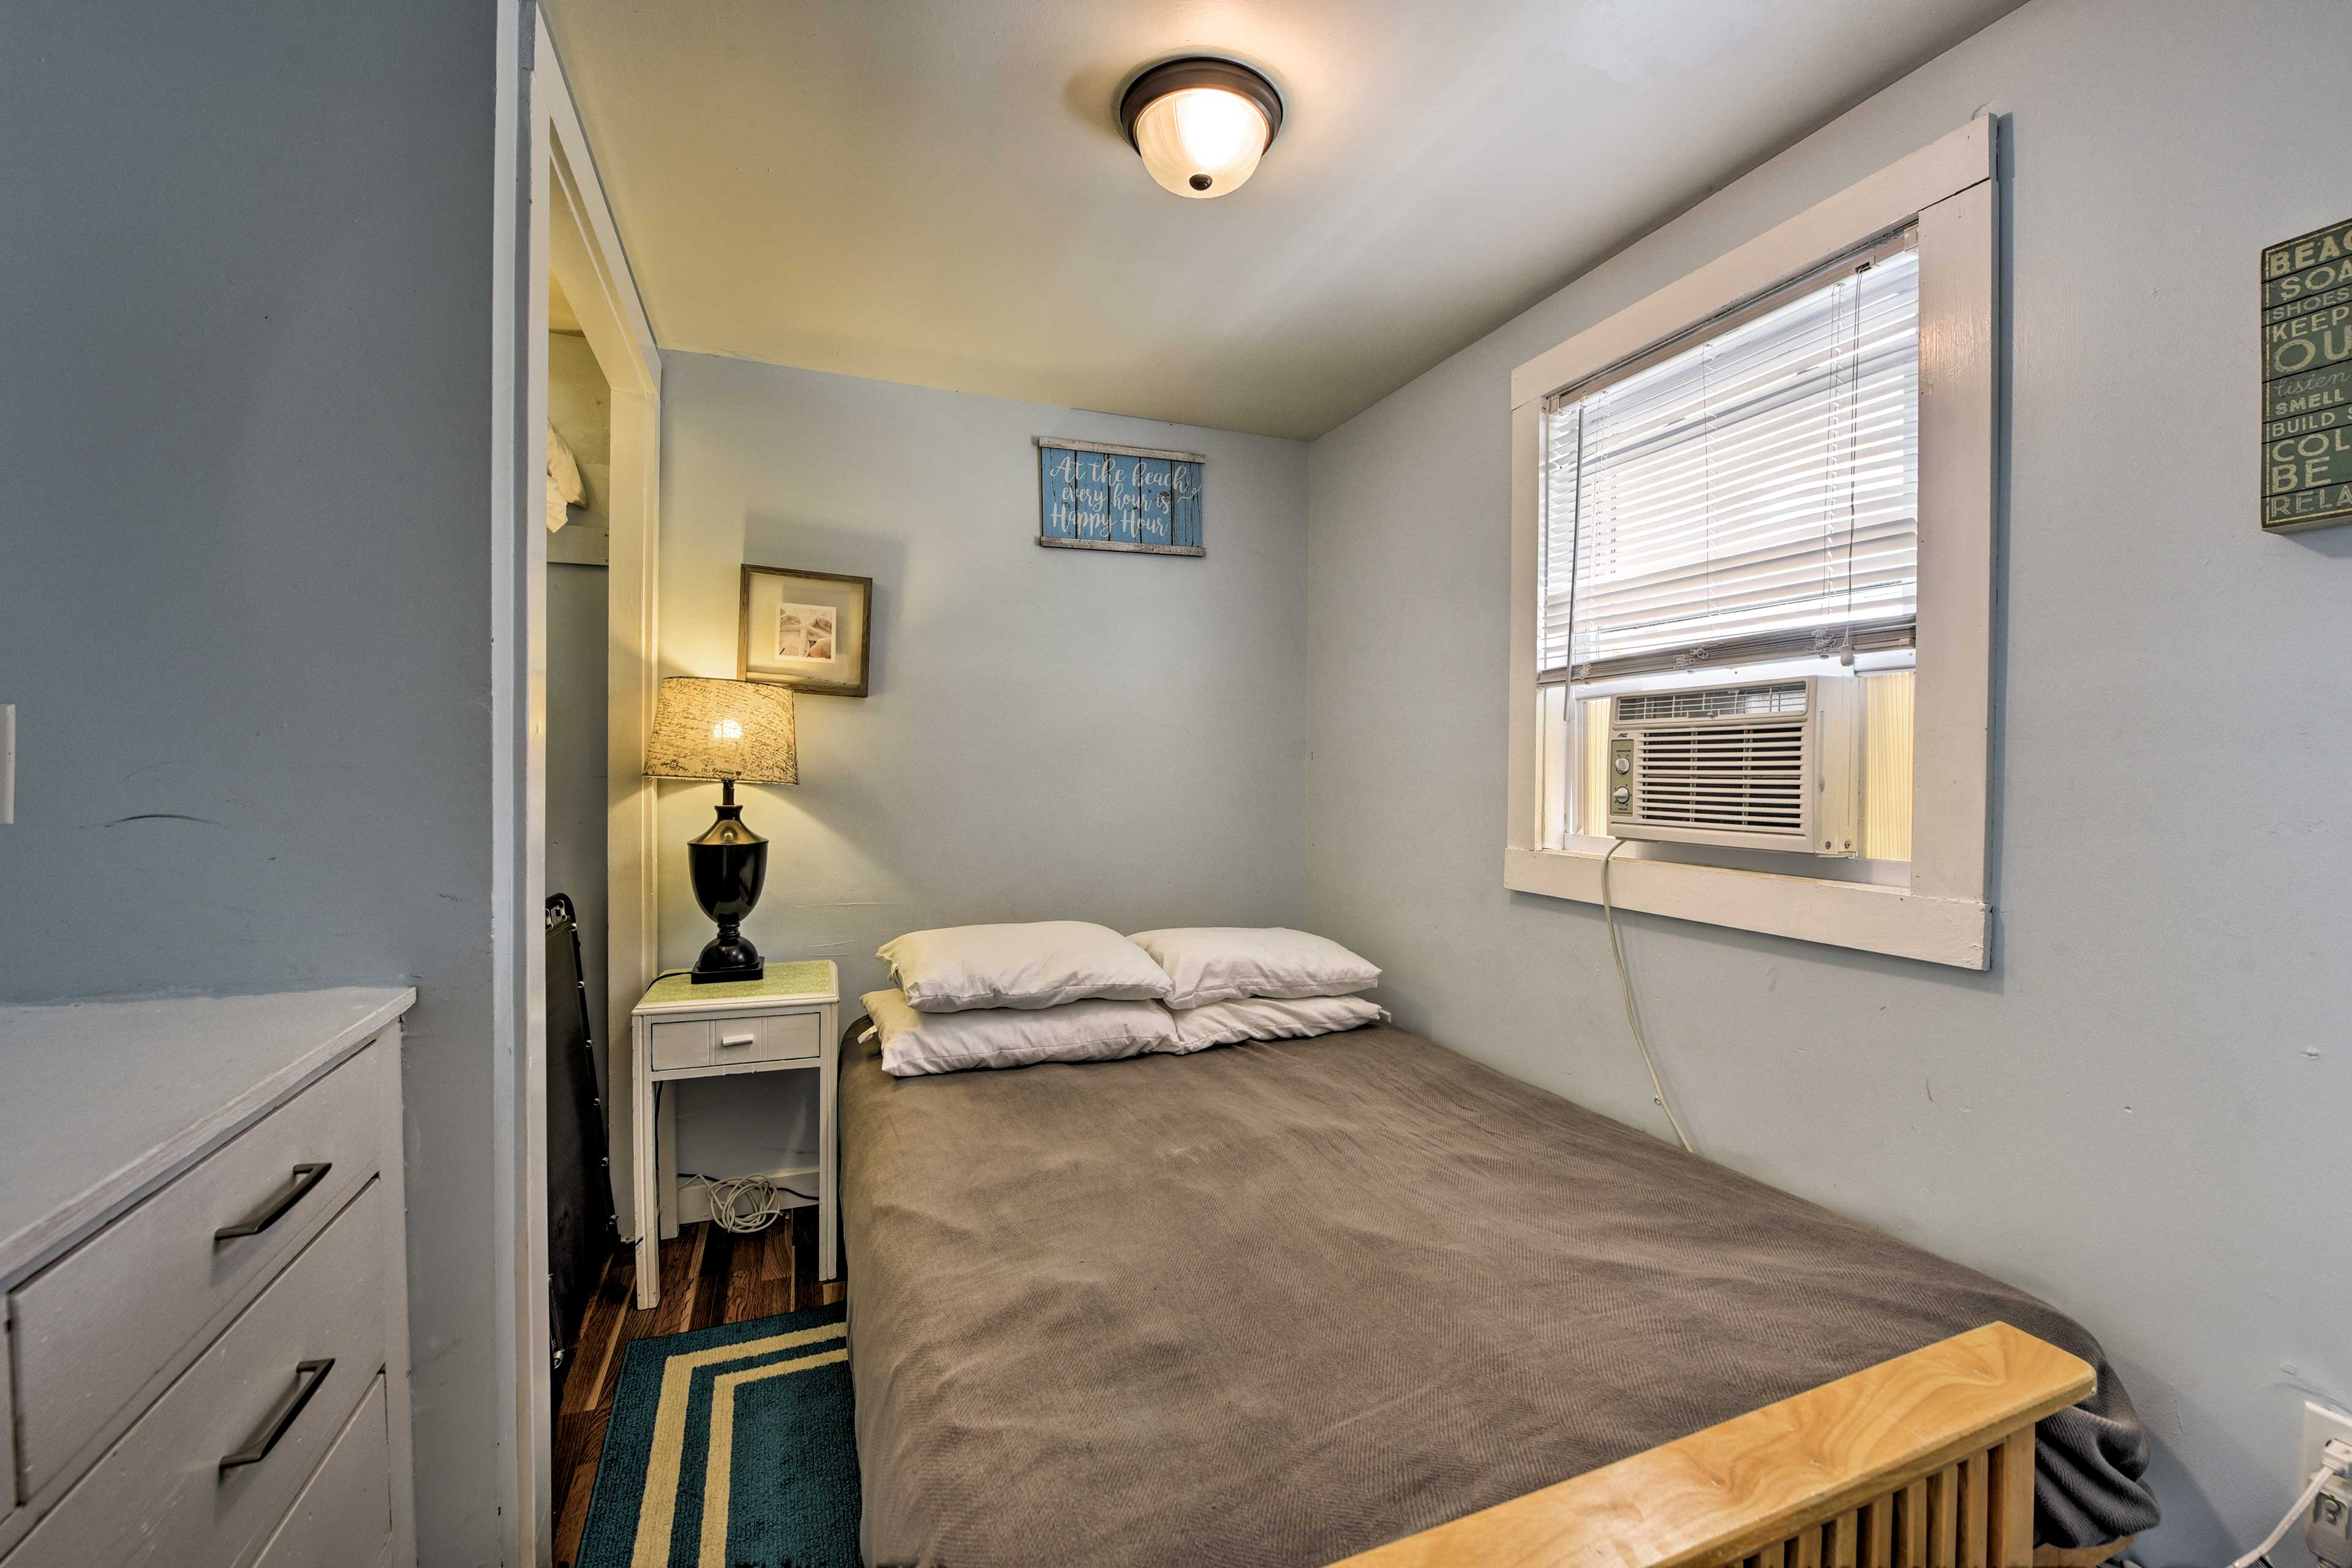 Guests are sure to sleep soundly in this full bed.